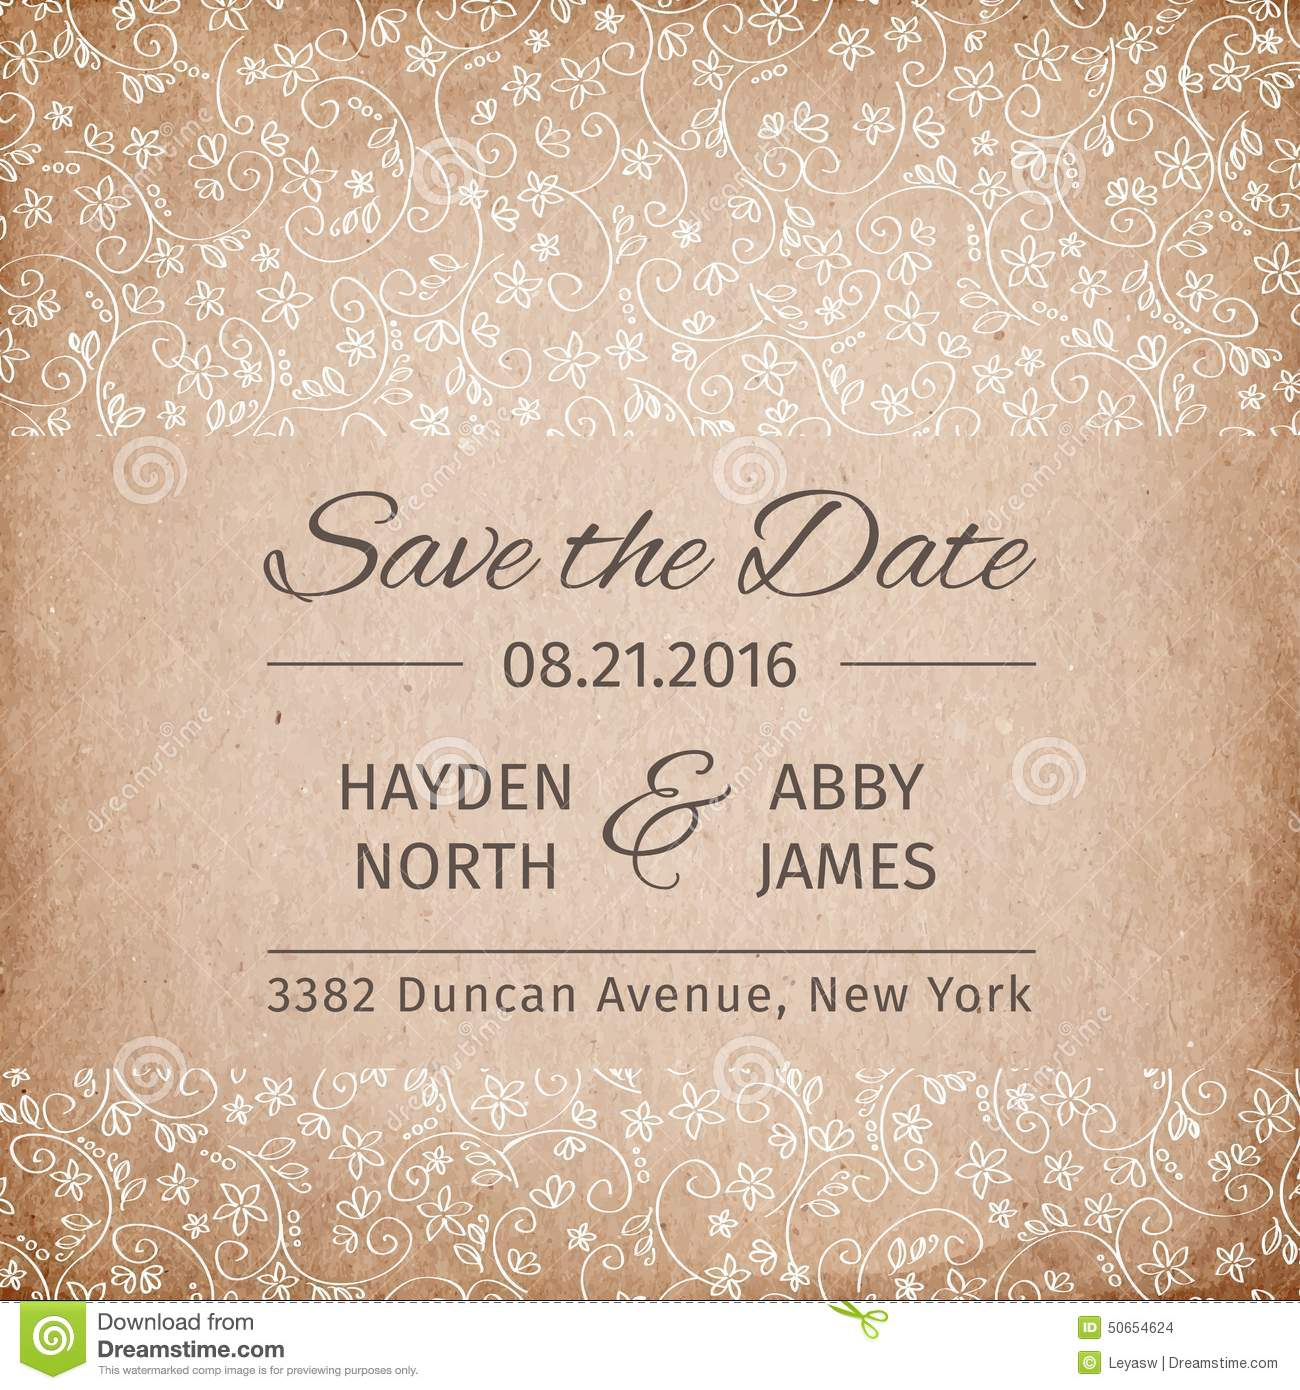 Save the date wedding invitation template vintage paper for Vintage save the date templates free